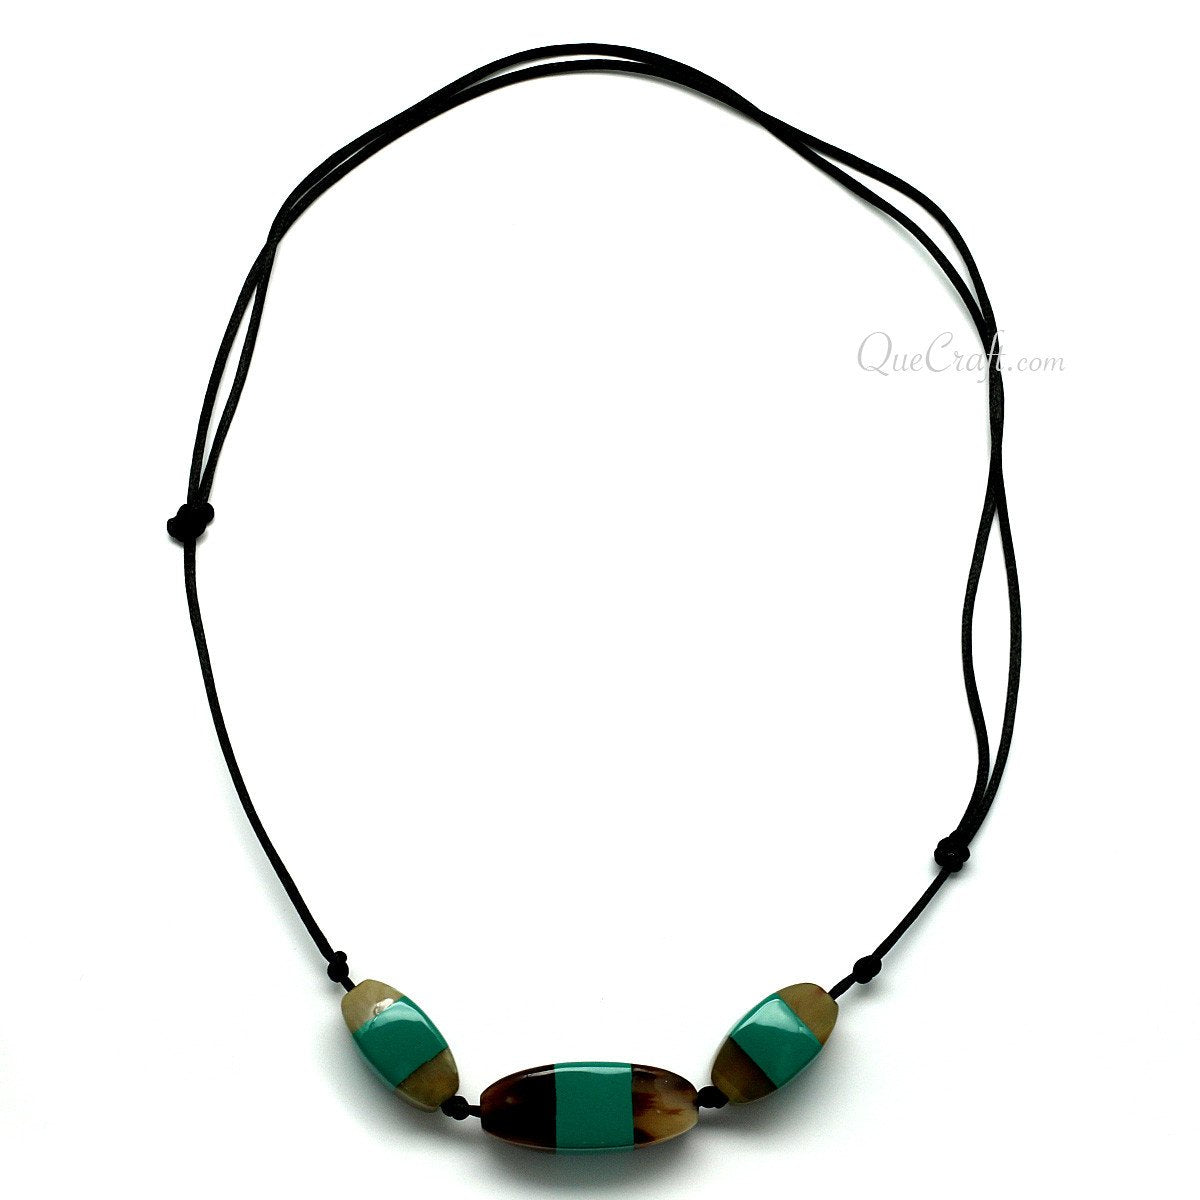 Horn & Lacquer String Necklace #11364 - HORN.JEWELRY by QueCraft